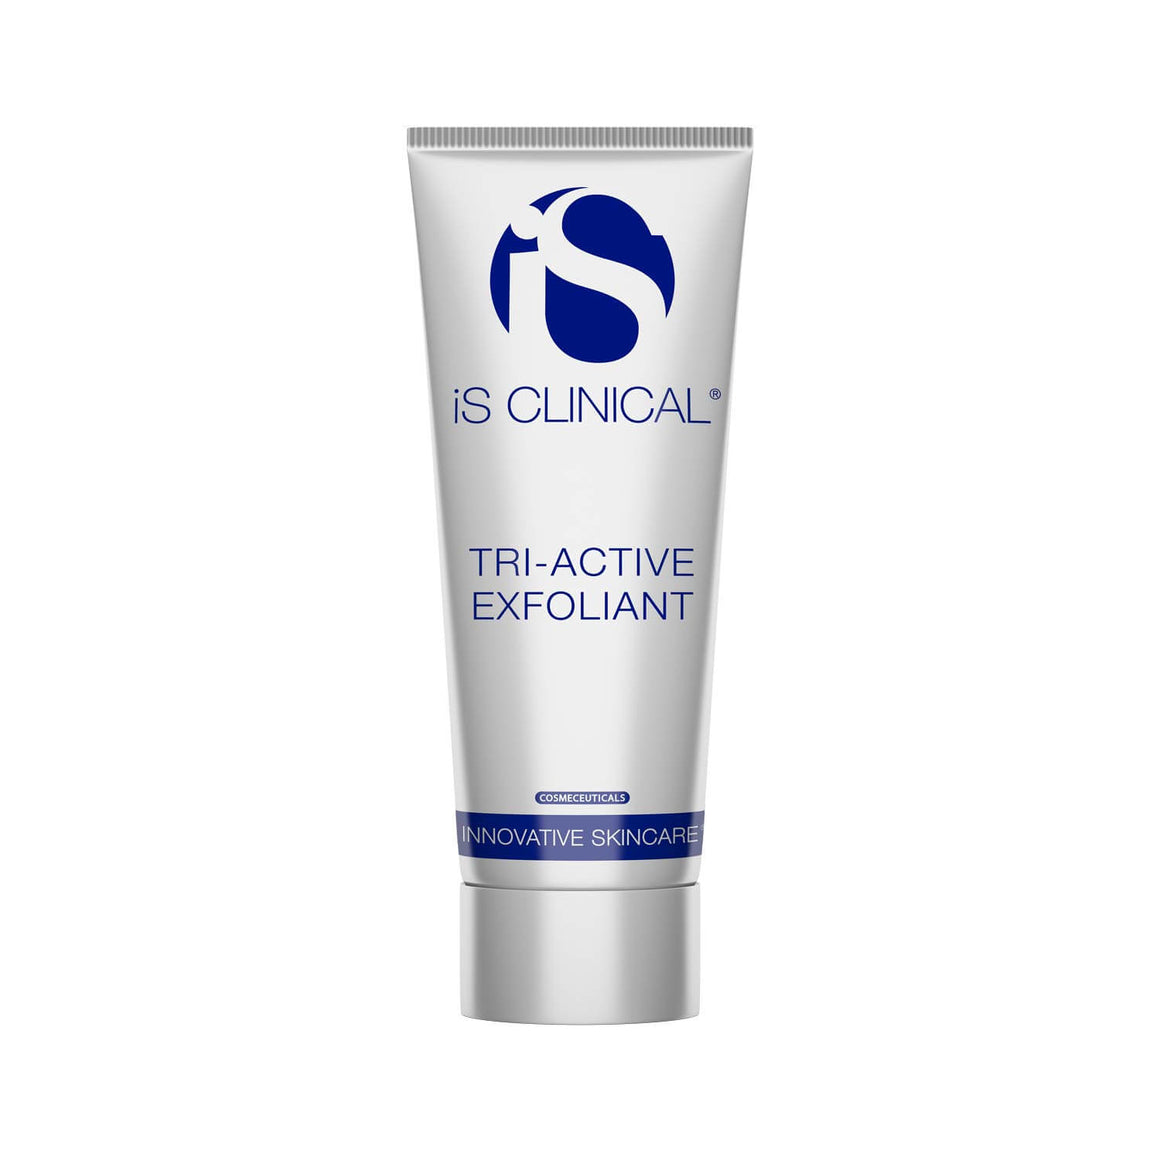 iS Clinical CLEANSE Tri-Active Exfoliant